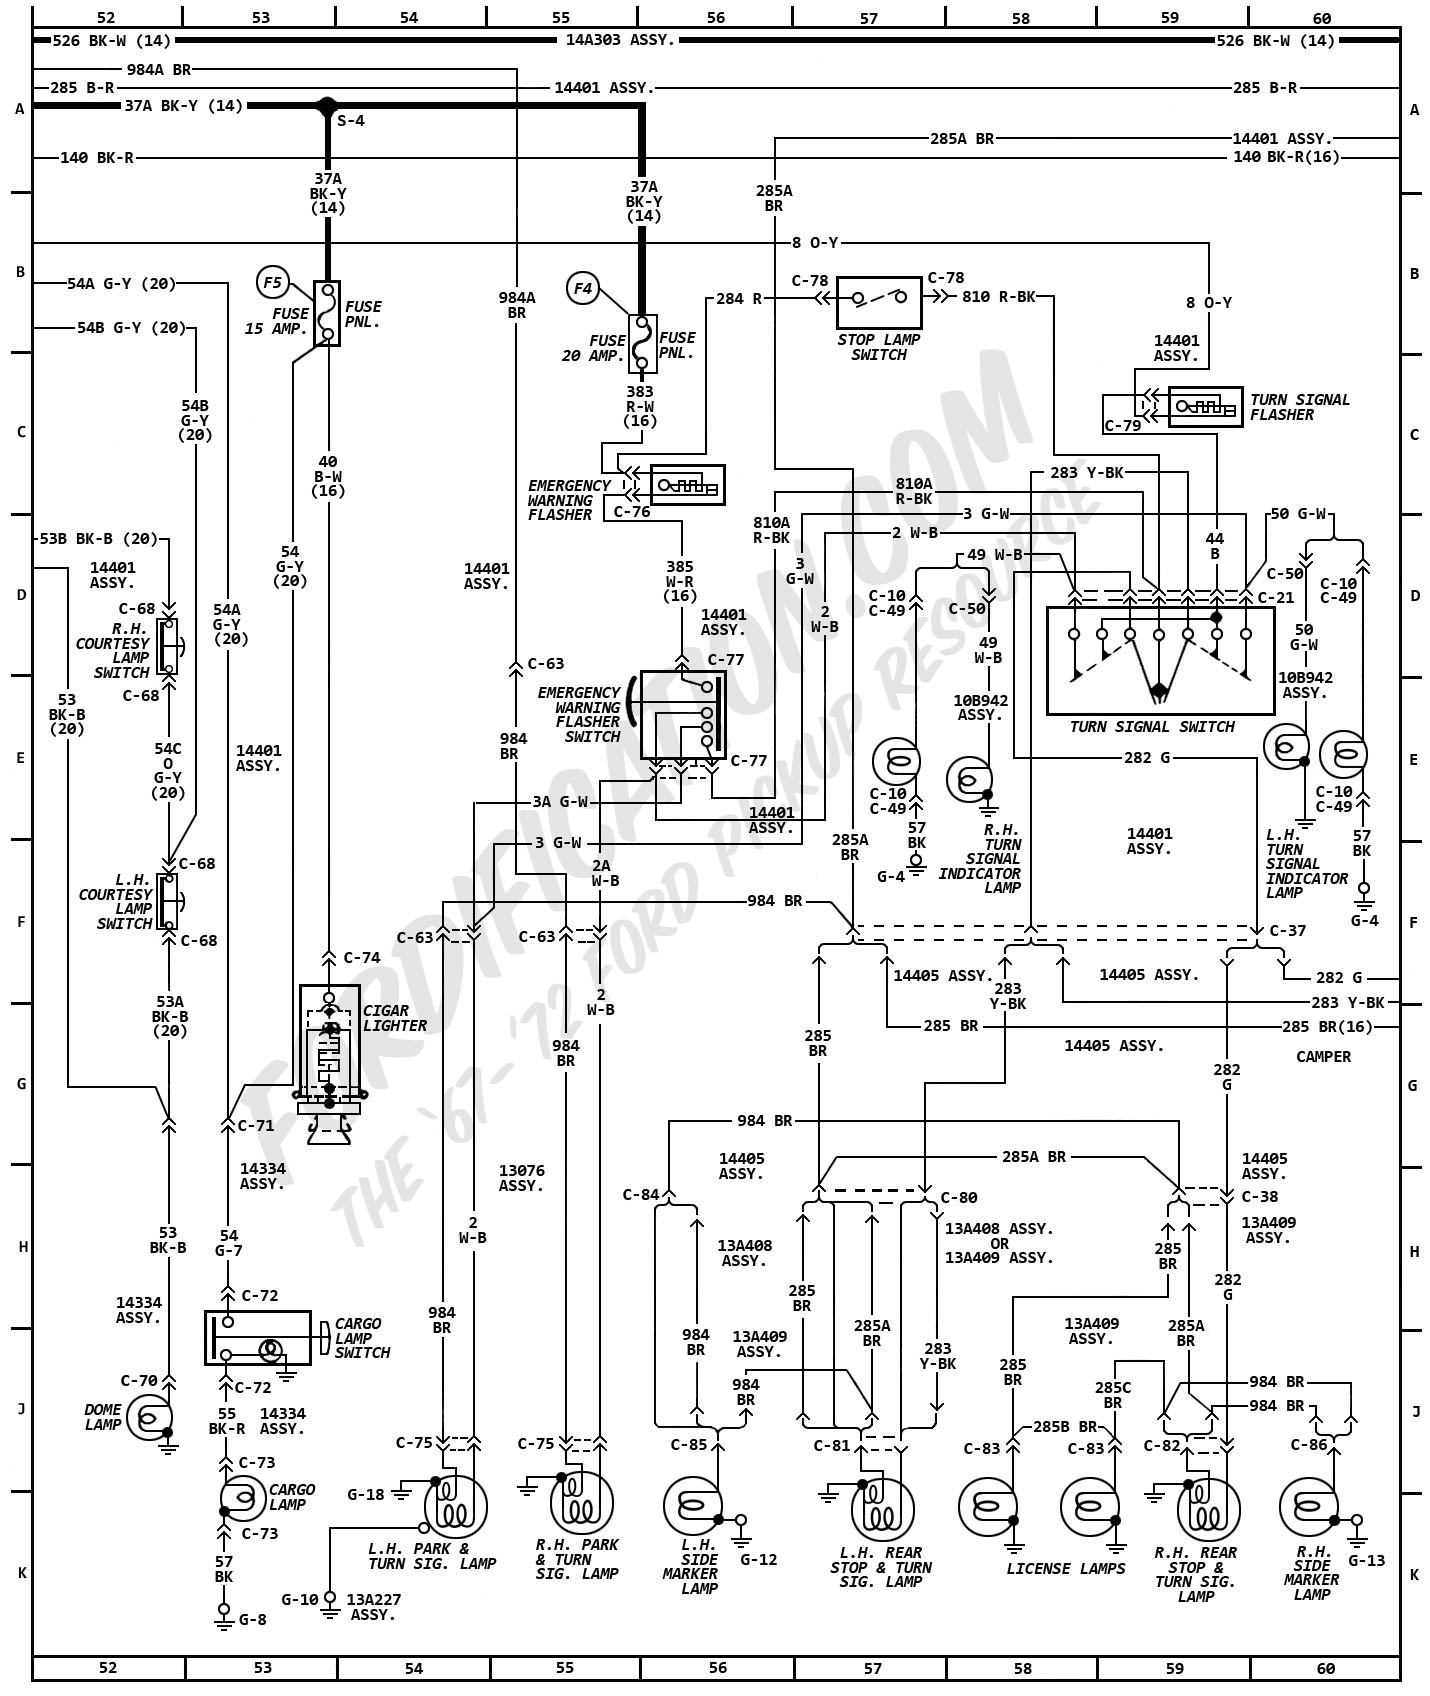 1972MasterWiring_06 1972 ford truck wiring diagrams fordification com wiring diagram 1972 ford f250 at edmiracle.co